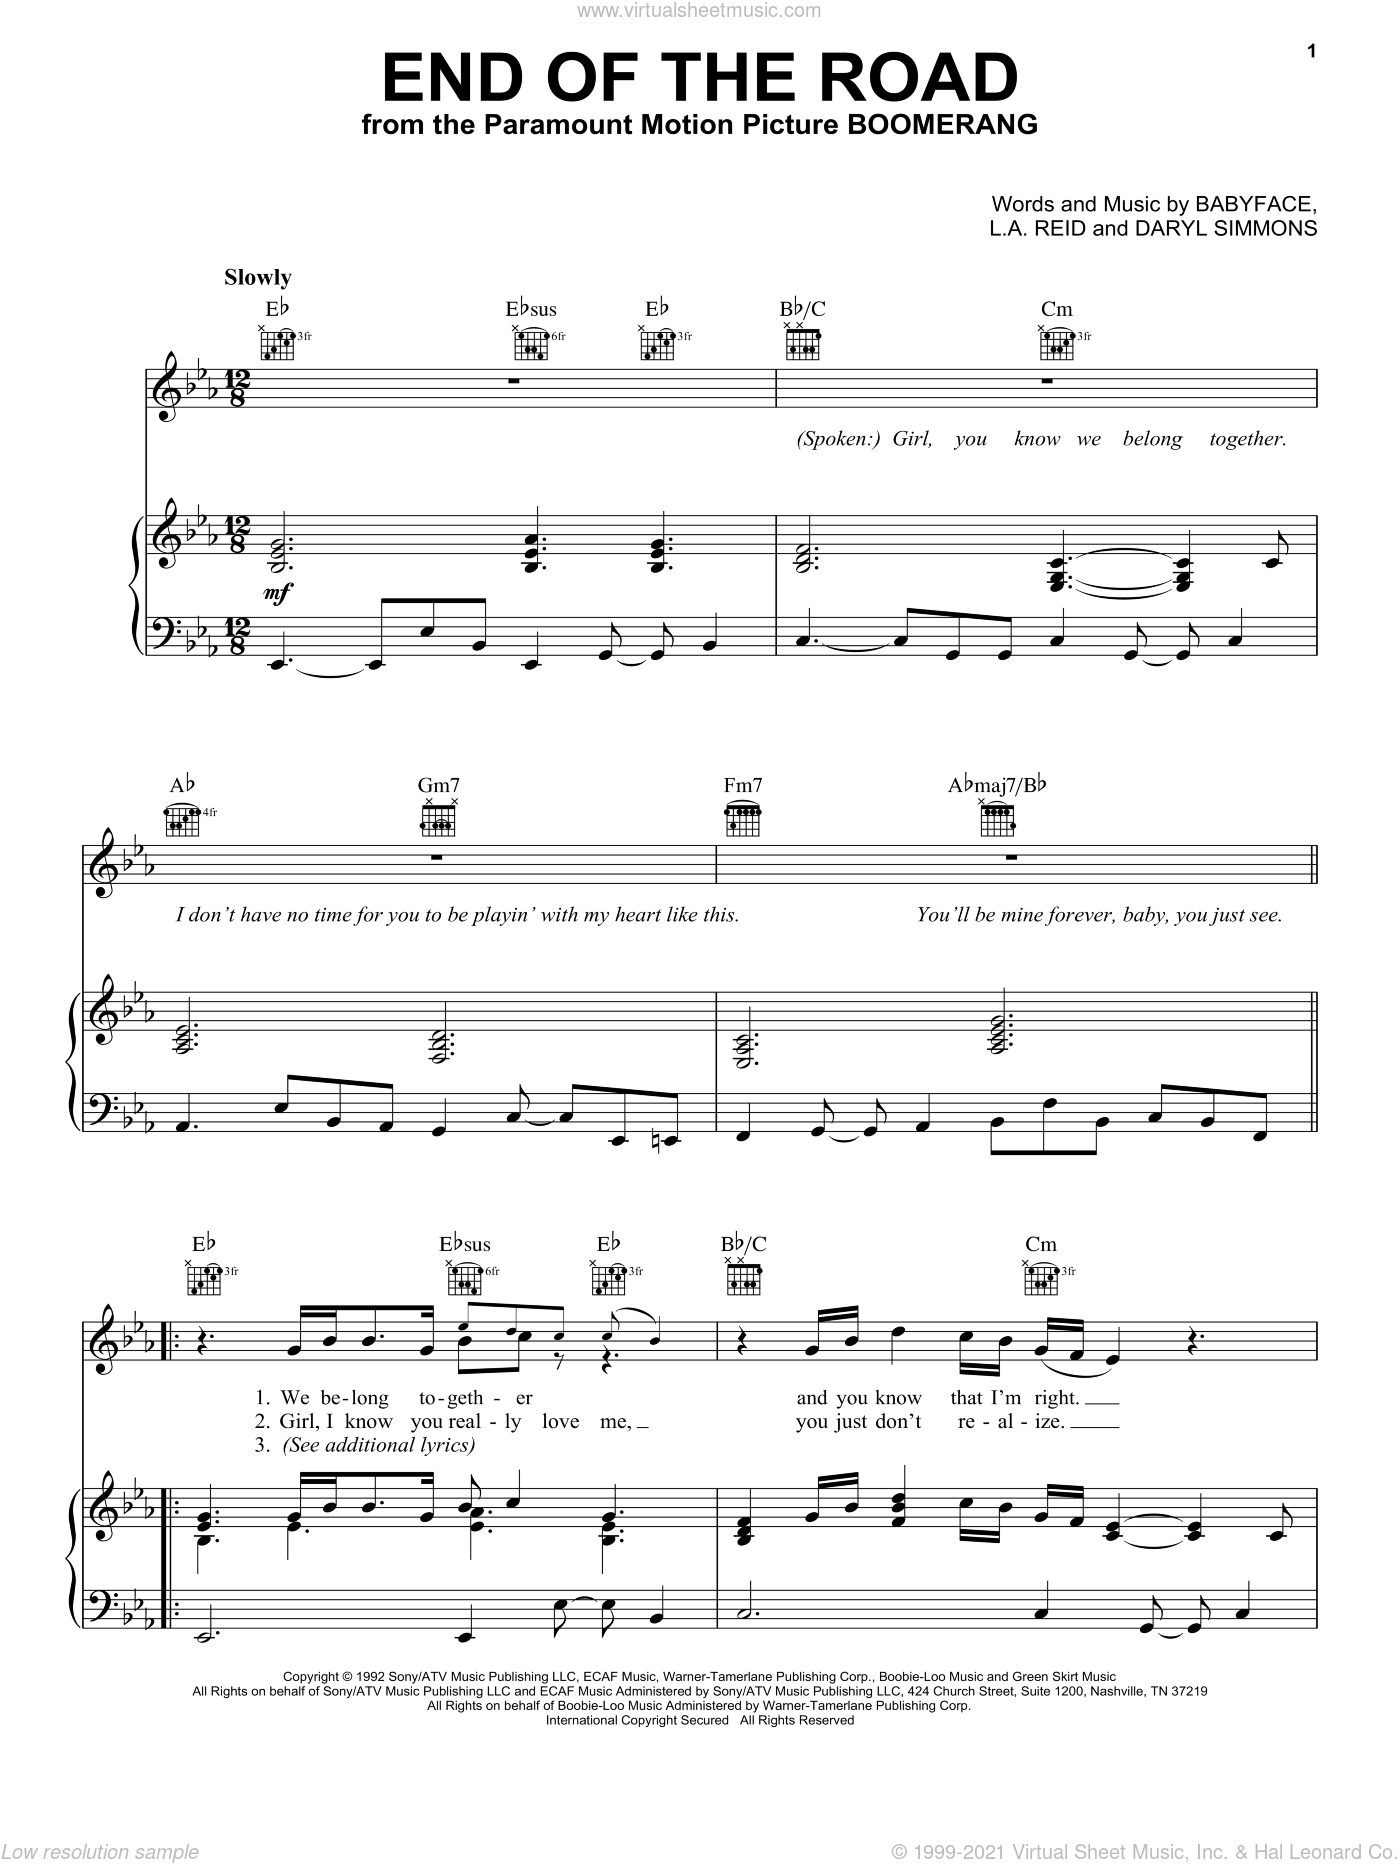 End Of The Road sheet music for voice, piano or guitar by Boyz II Men, Babyface, Daryl Simmons and L.A. Reid, intermediate skill level